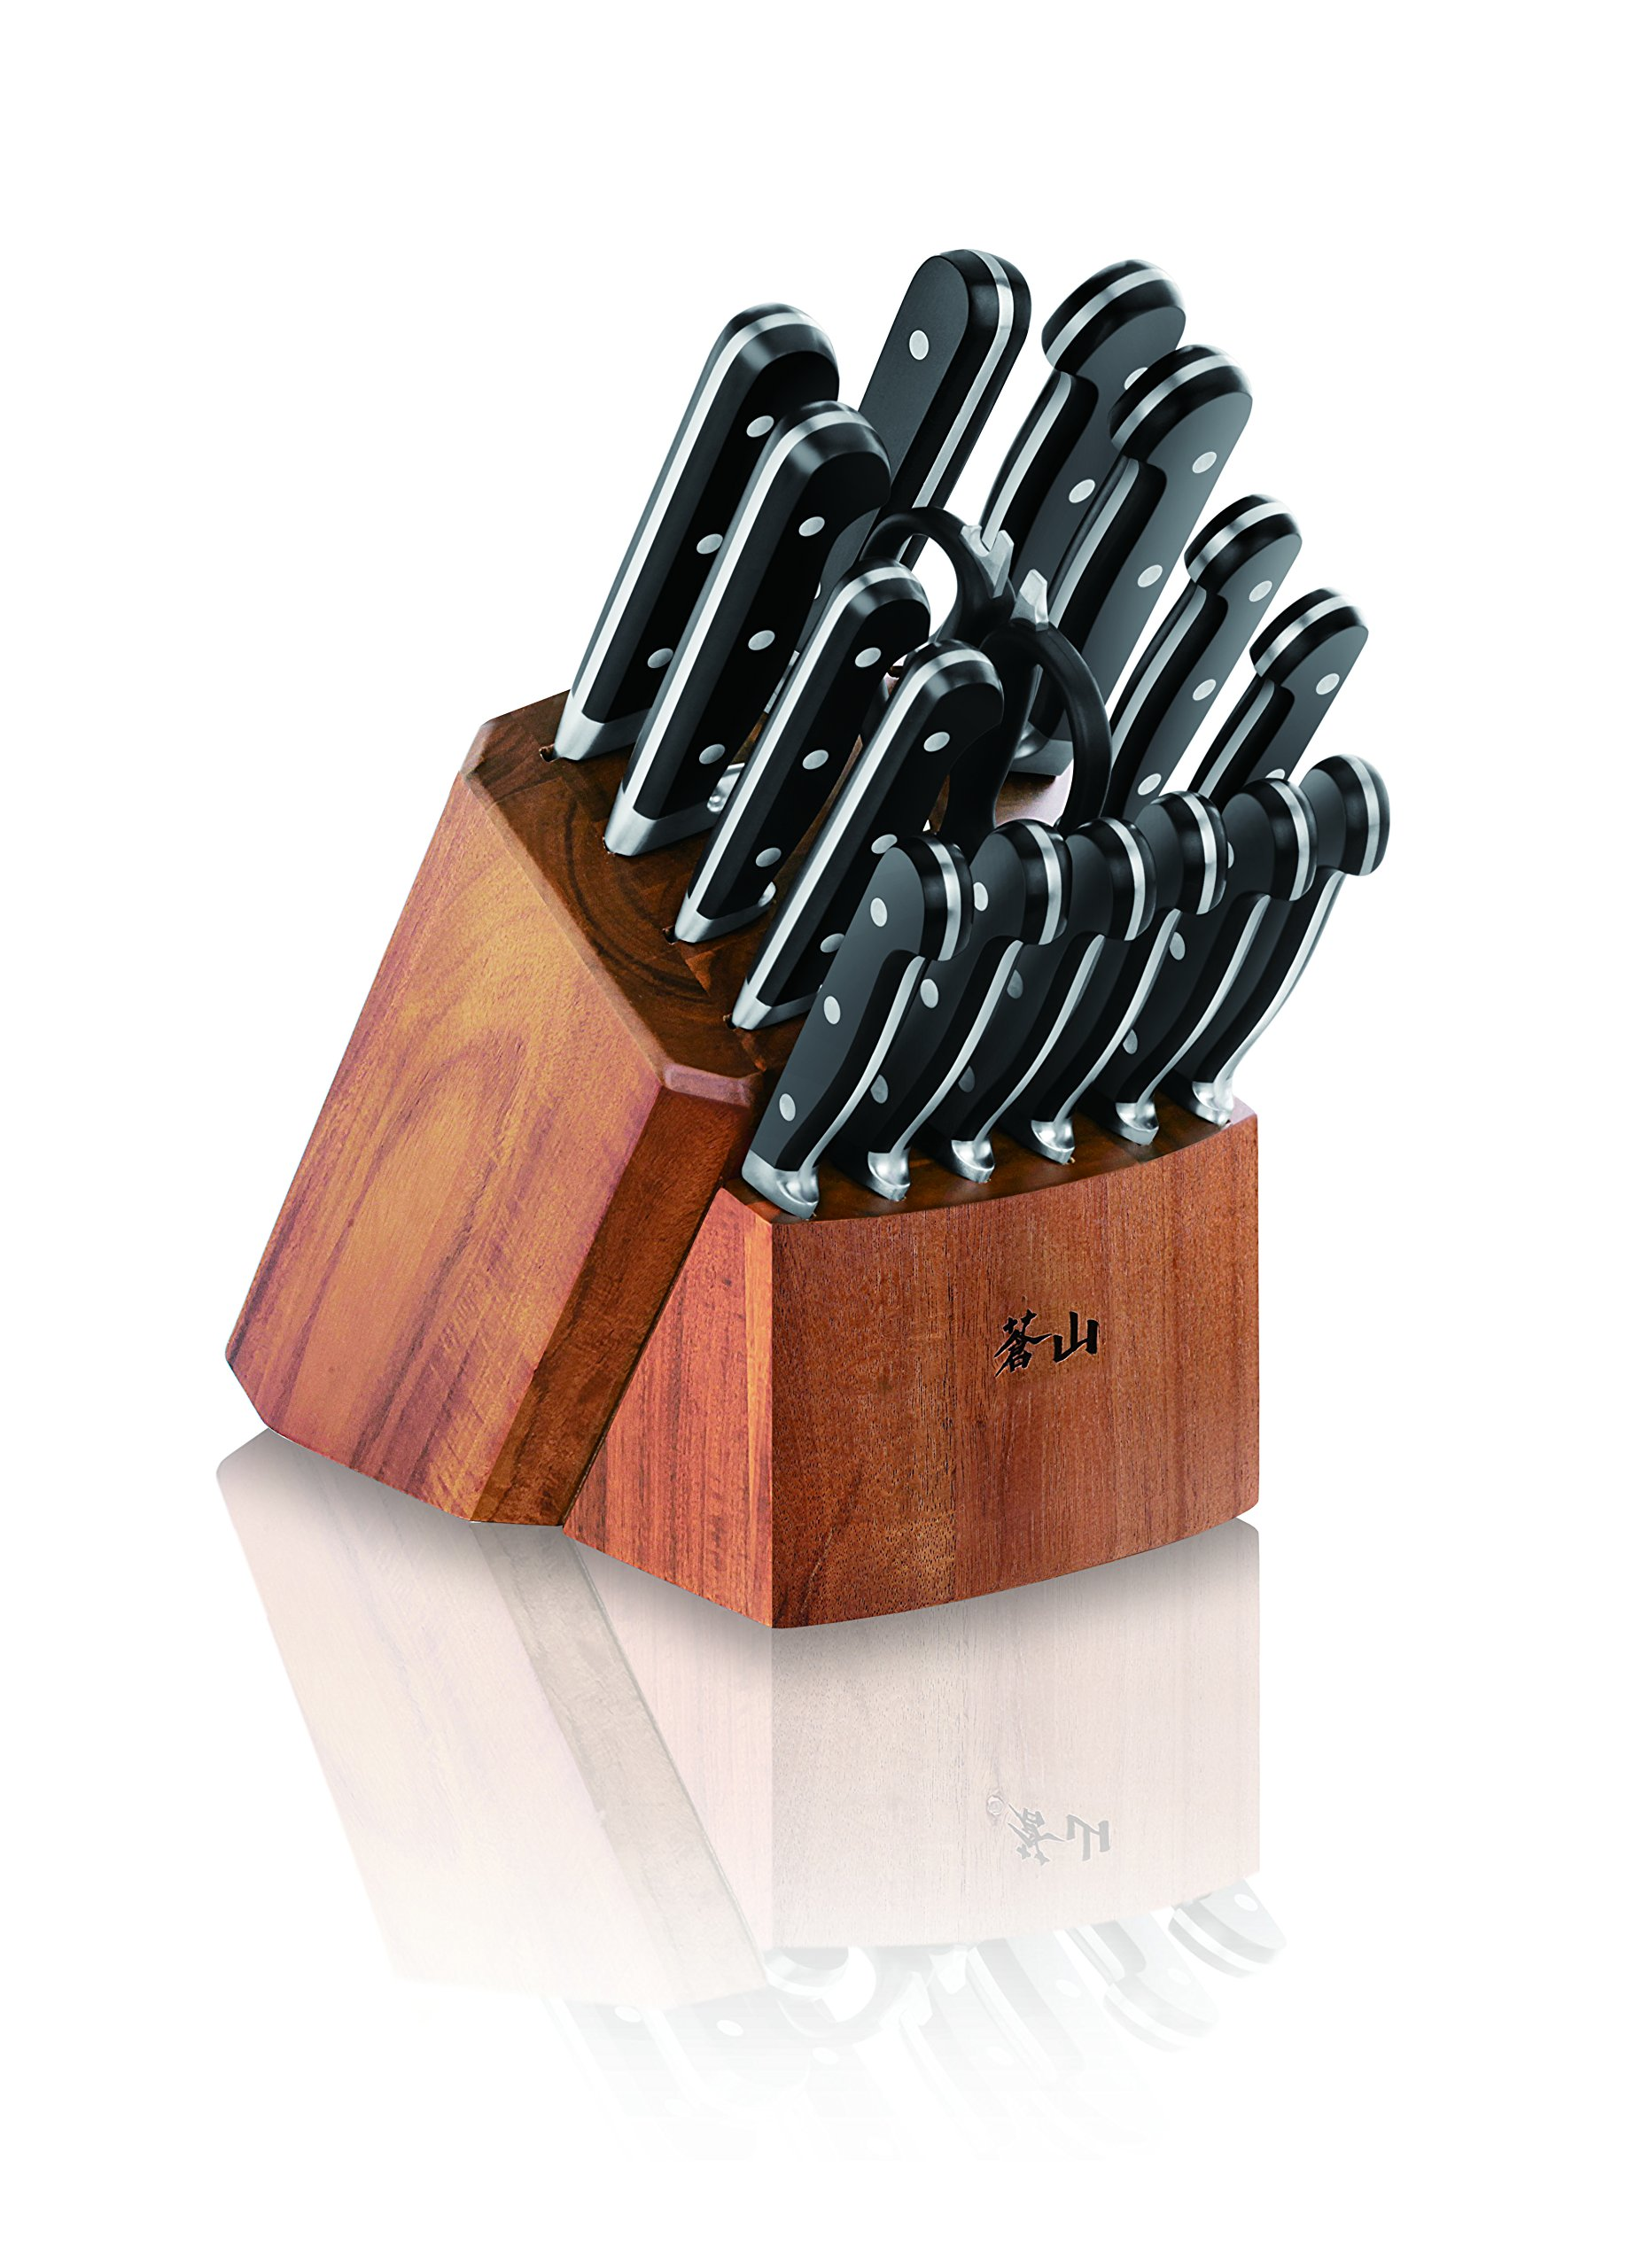 Cangshan V2 Series 1022551 German Steel Forged 17-Piece Knife Block Set , Acacia by Cangshan (Image #8)